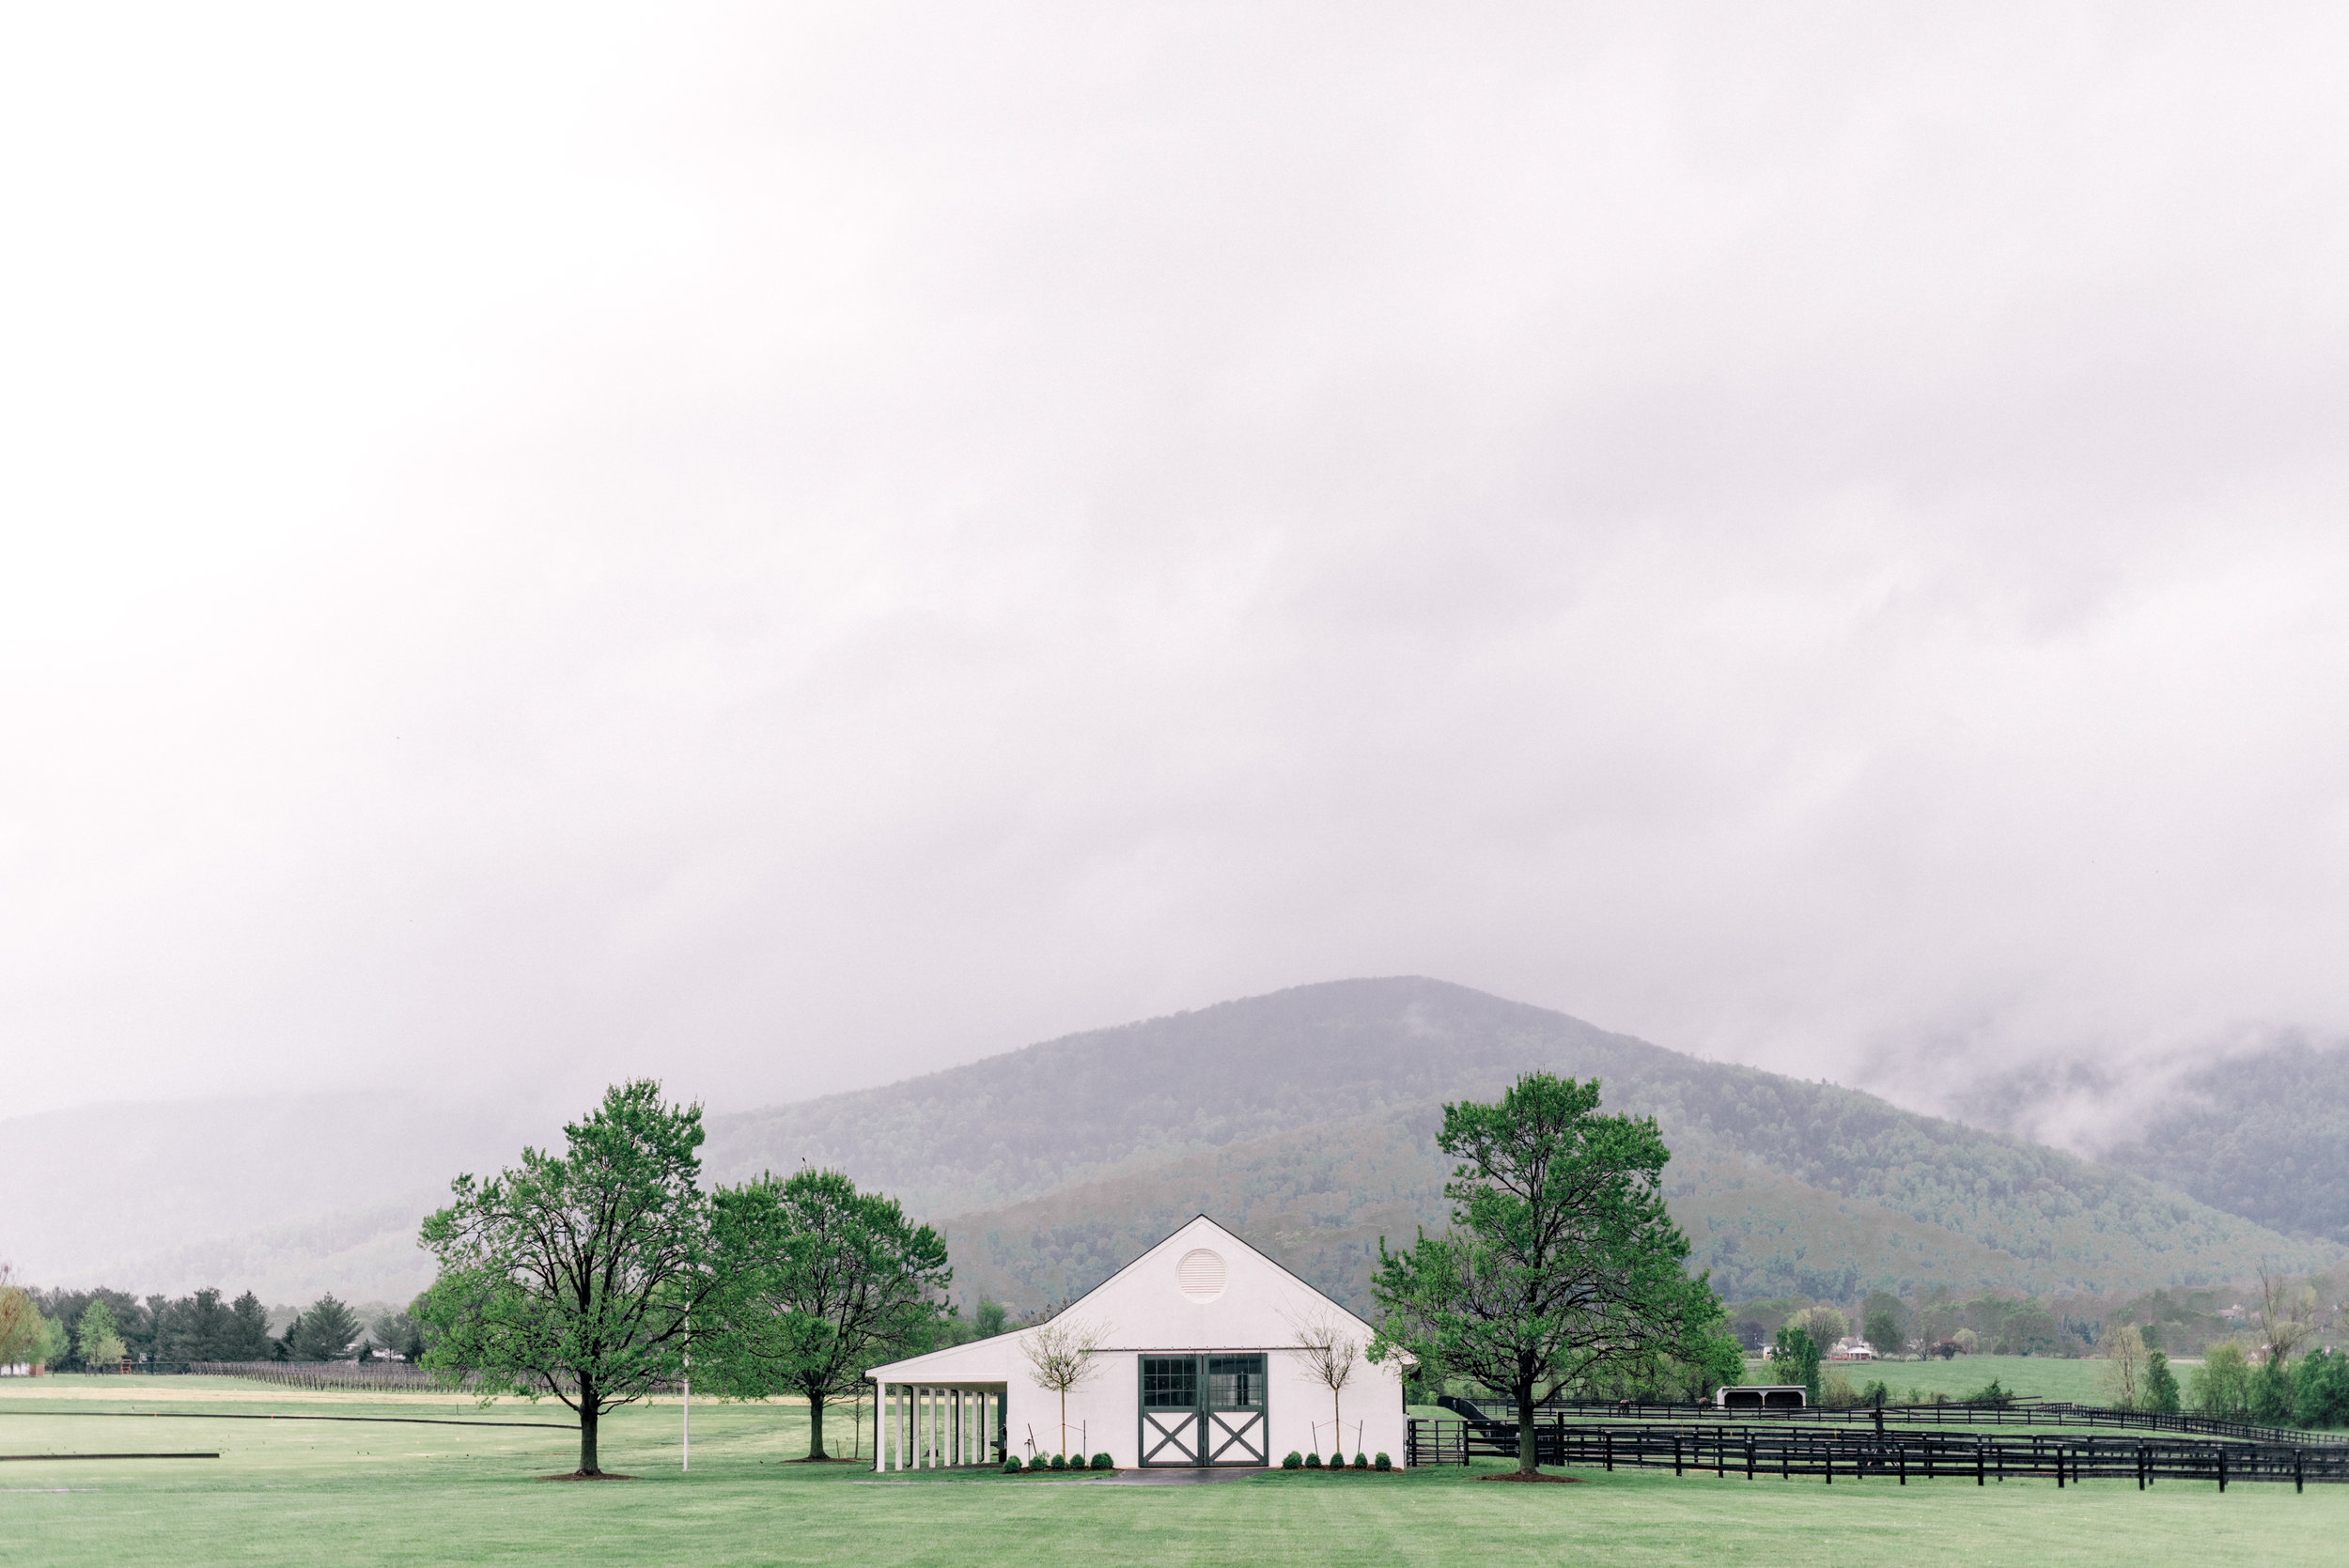 Anna's love for the Blue Ridge Mountains was celebrated by creating a one-of-a-kind ceremony backdrop using reclaimed barn wood covered with lush greenery. Eucalyptus and muted florals perfectly complimented the soft blues of the bridal party and rainy sky.